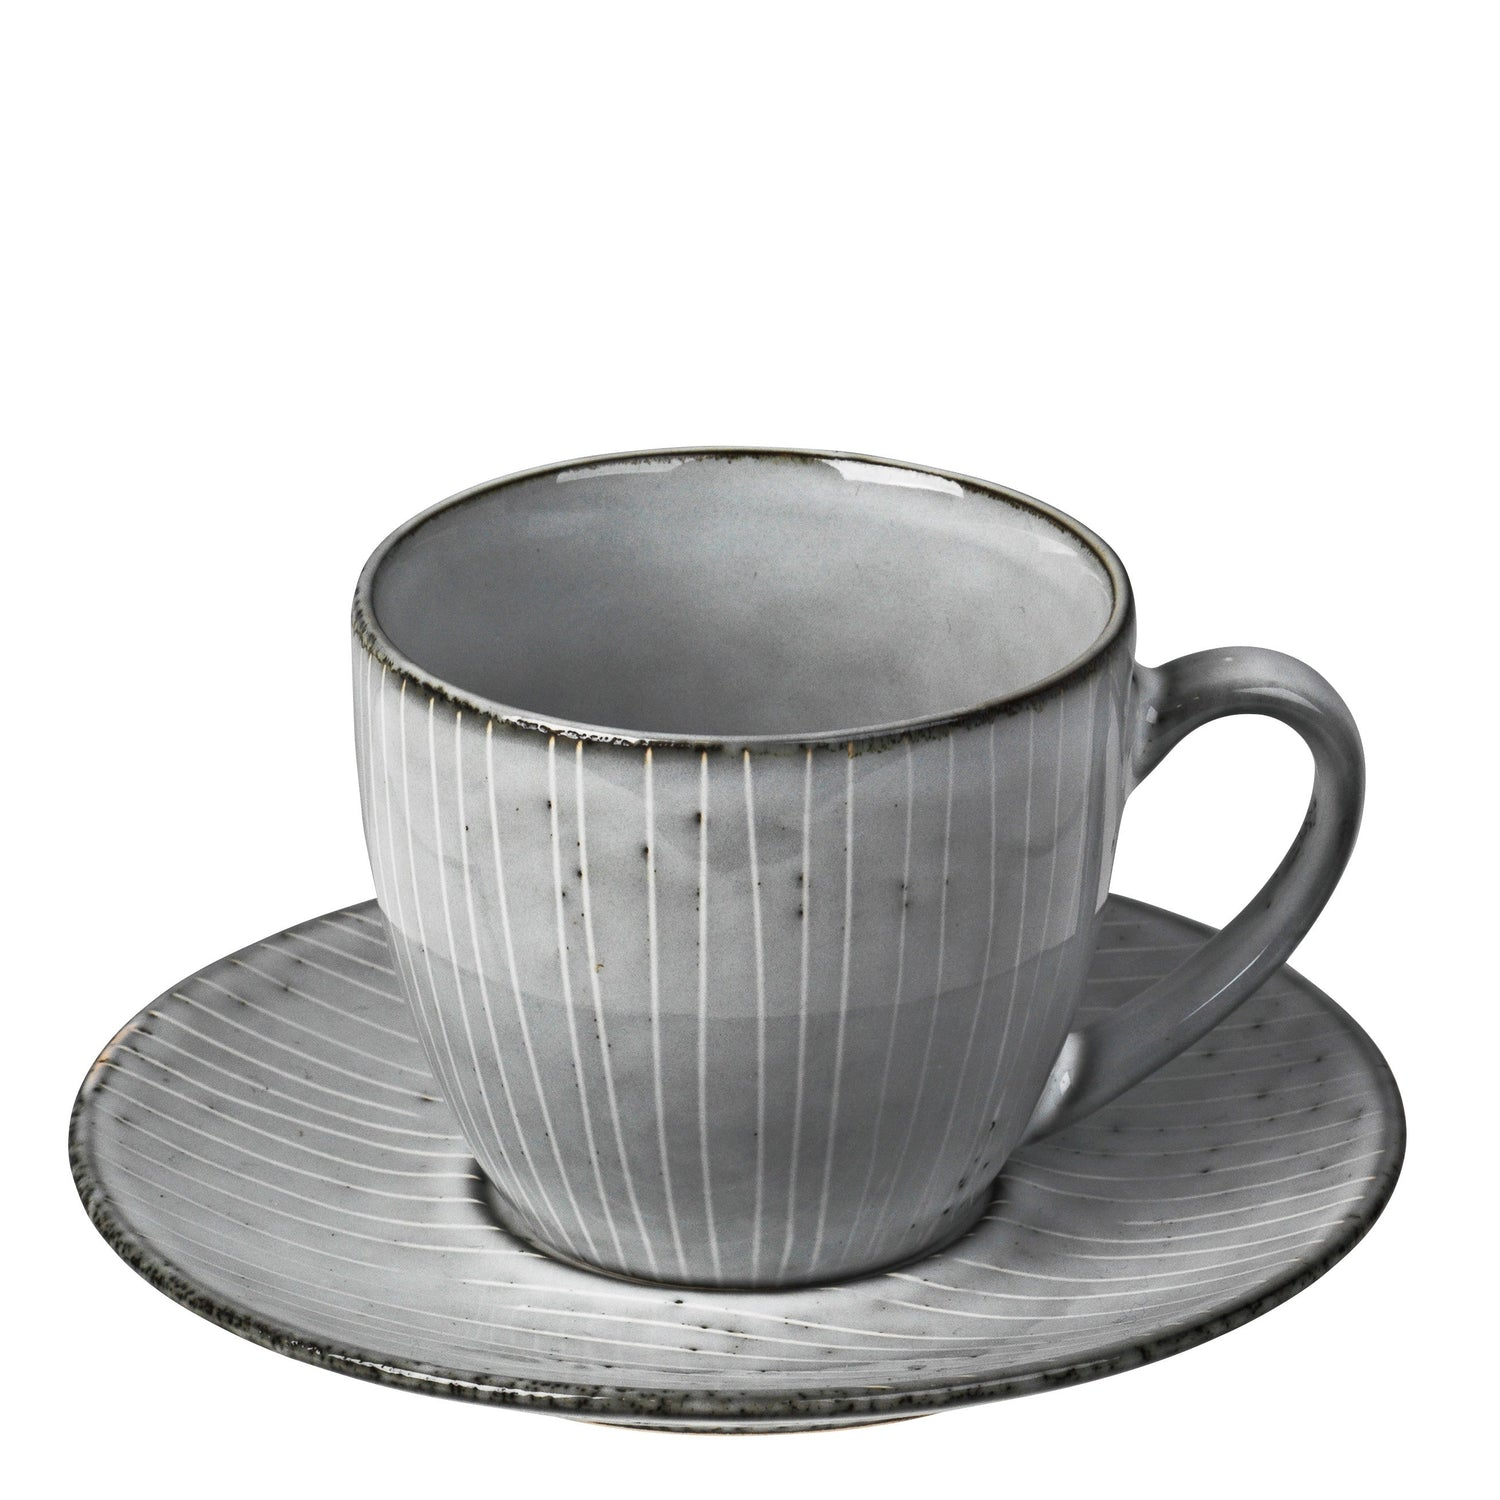 Cup W/Saucer 'nordic sea'